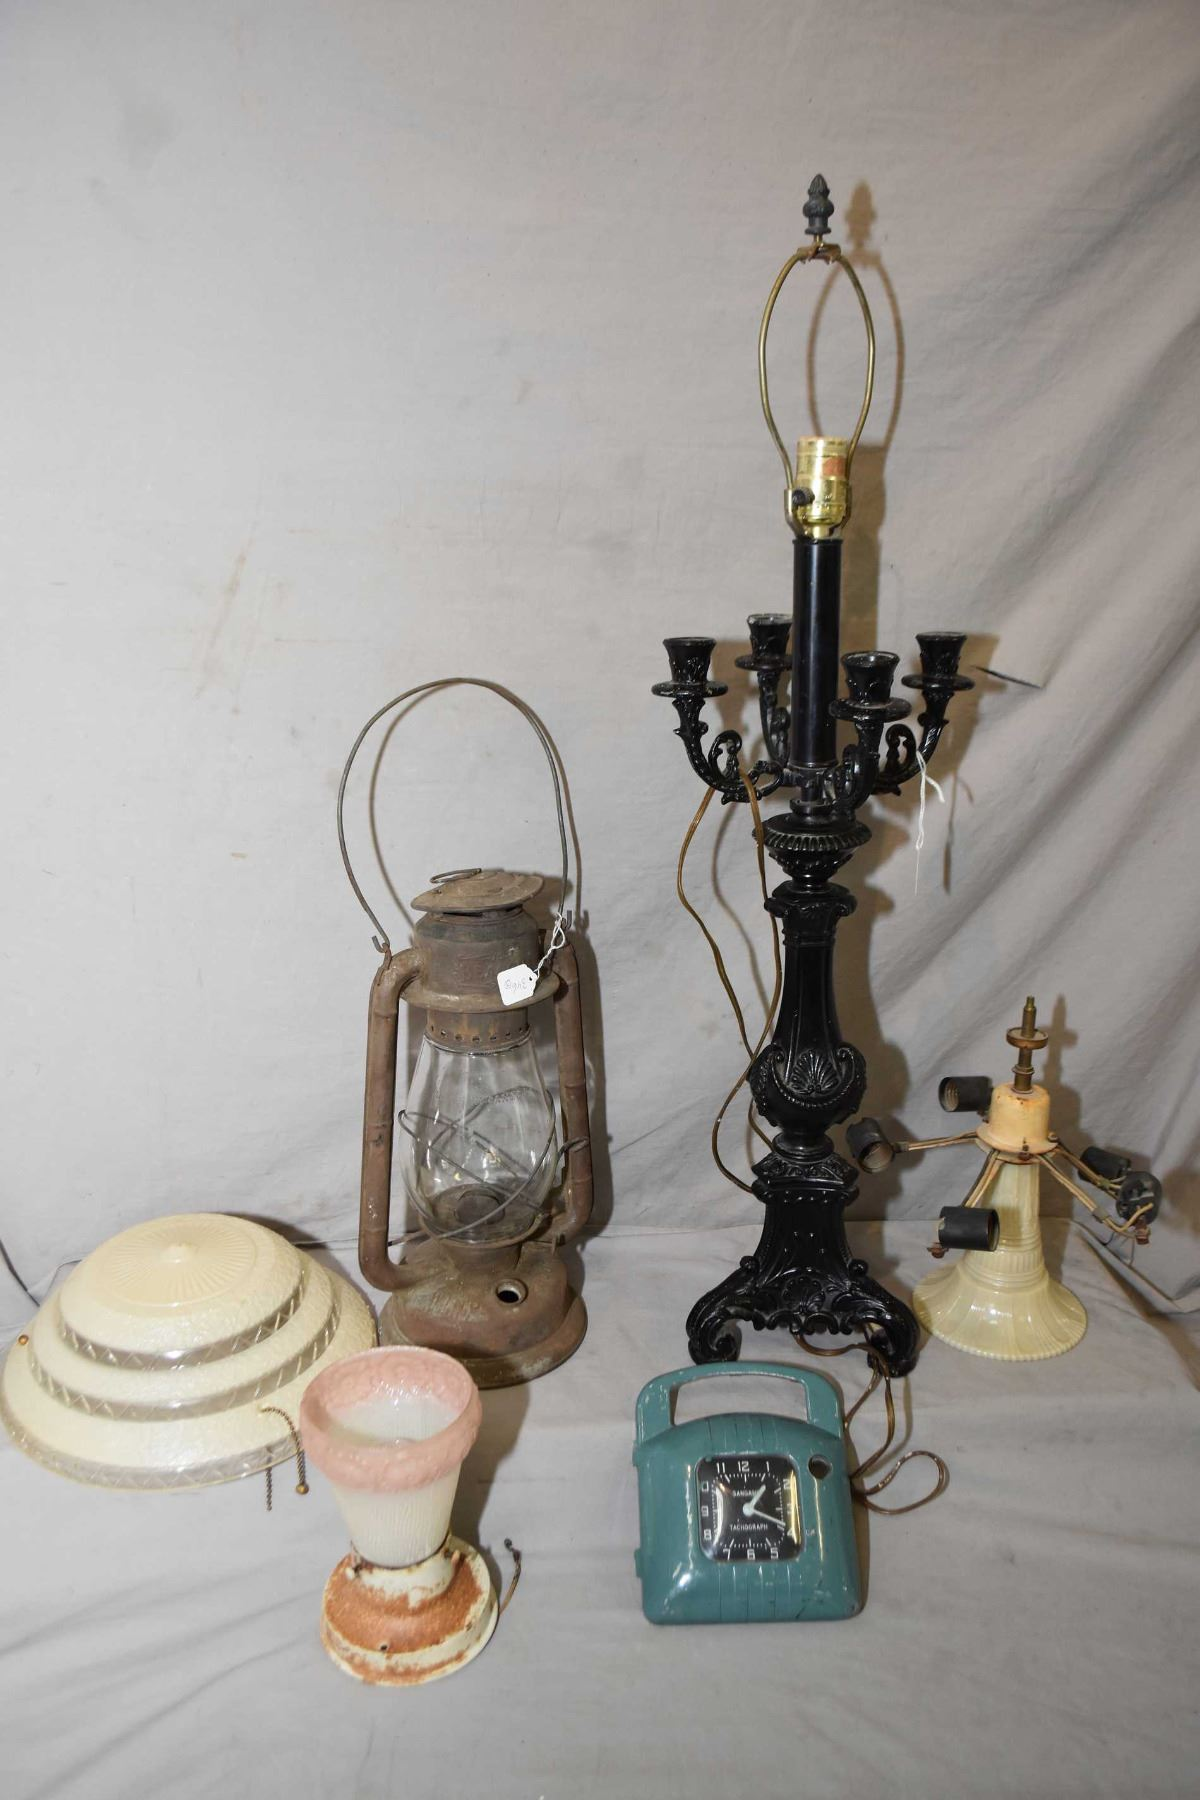 Image 1 Cast Blank Candelabra Style Table Lamp A Five Branch Gl Ceiling Fixture